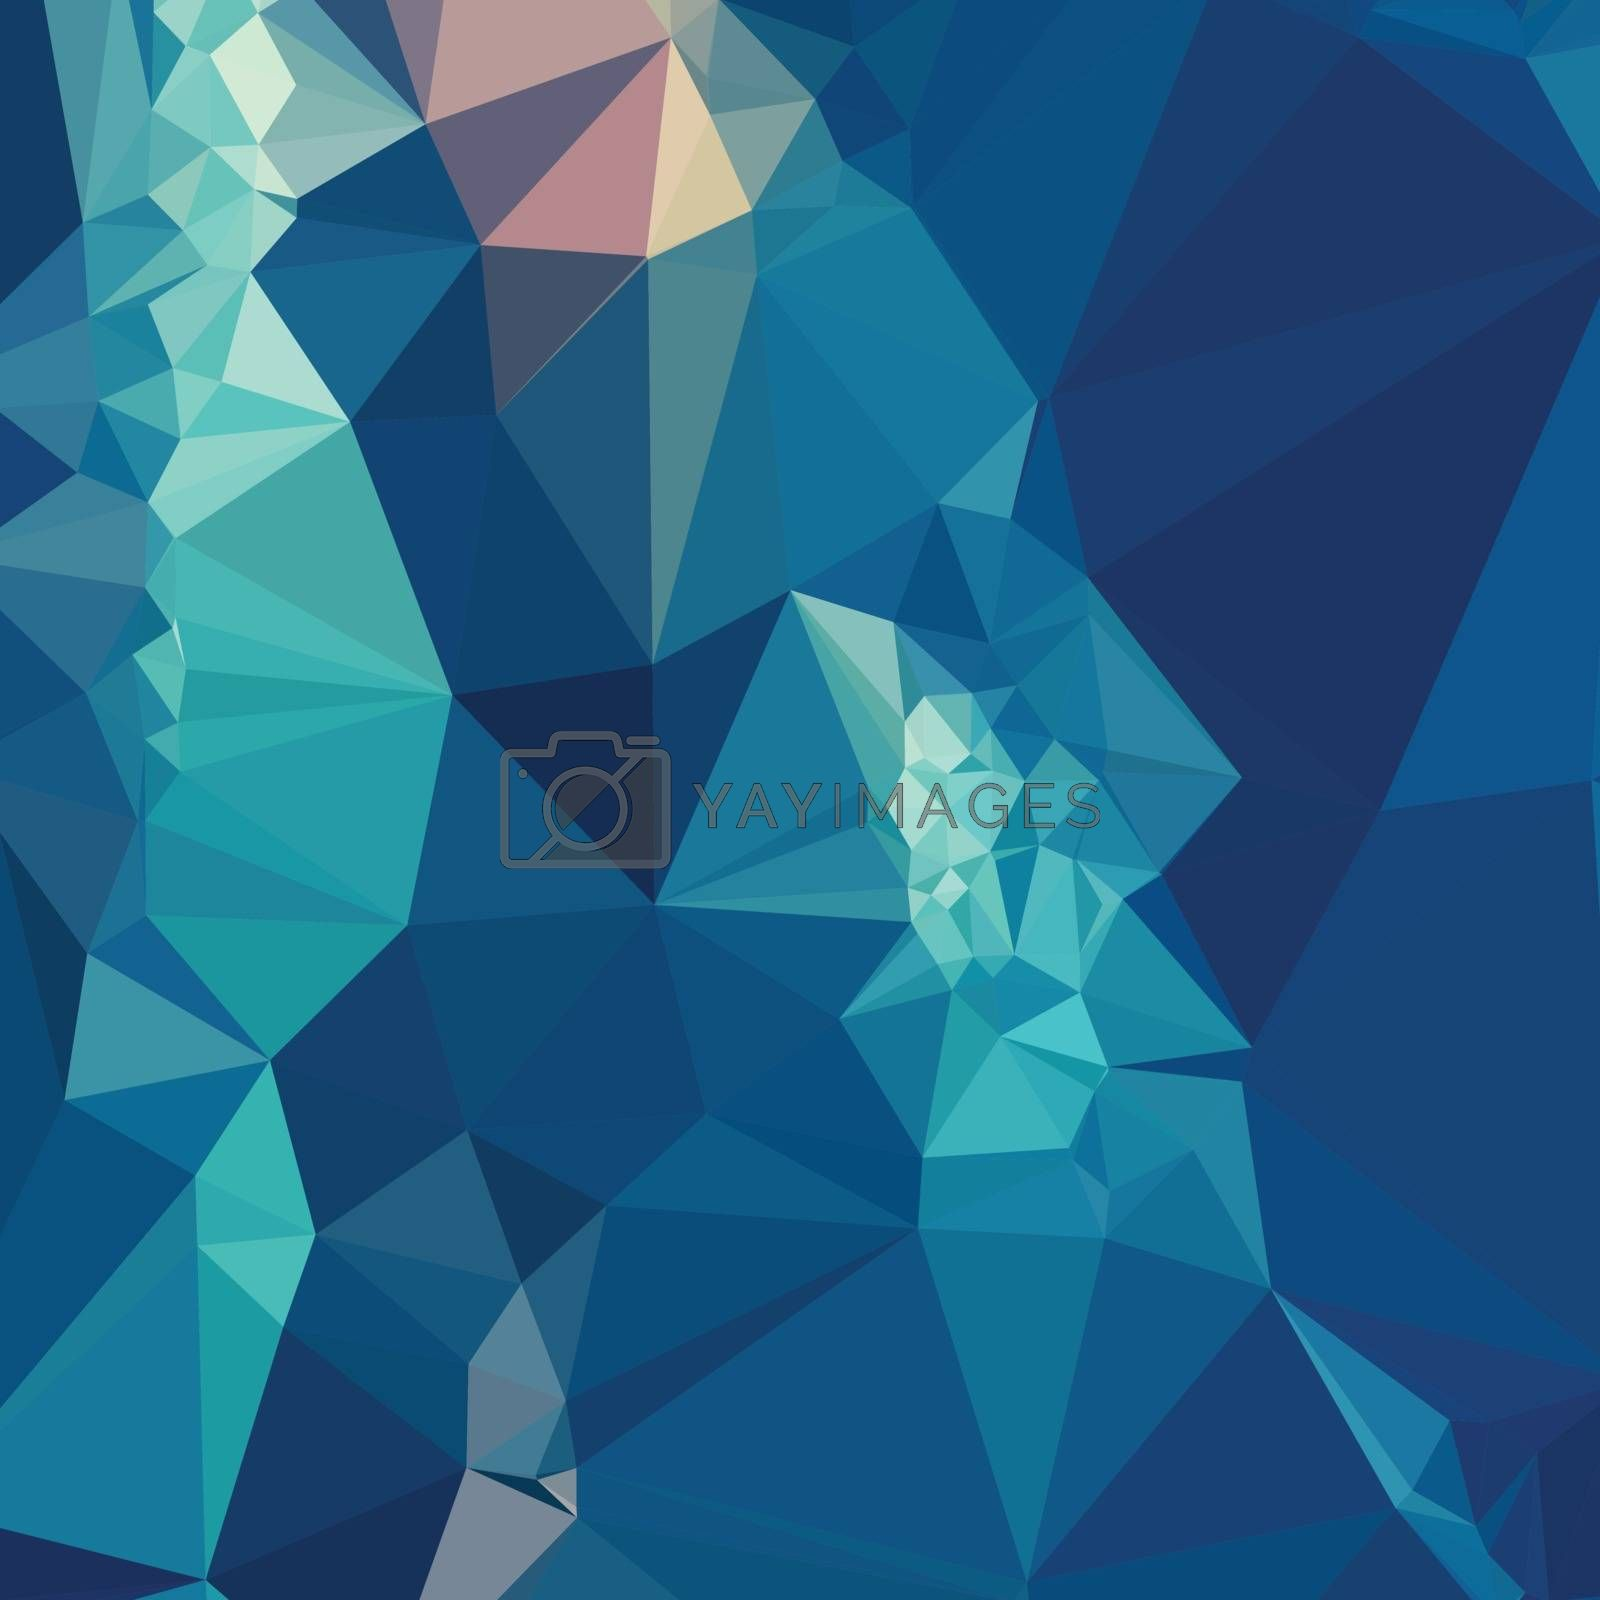 Low polygon style illustration of a blue abstract geometric background.